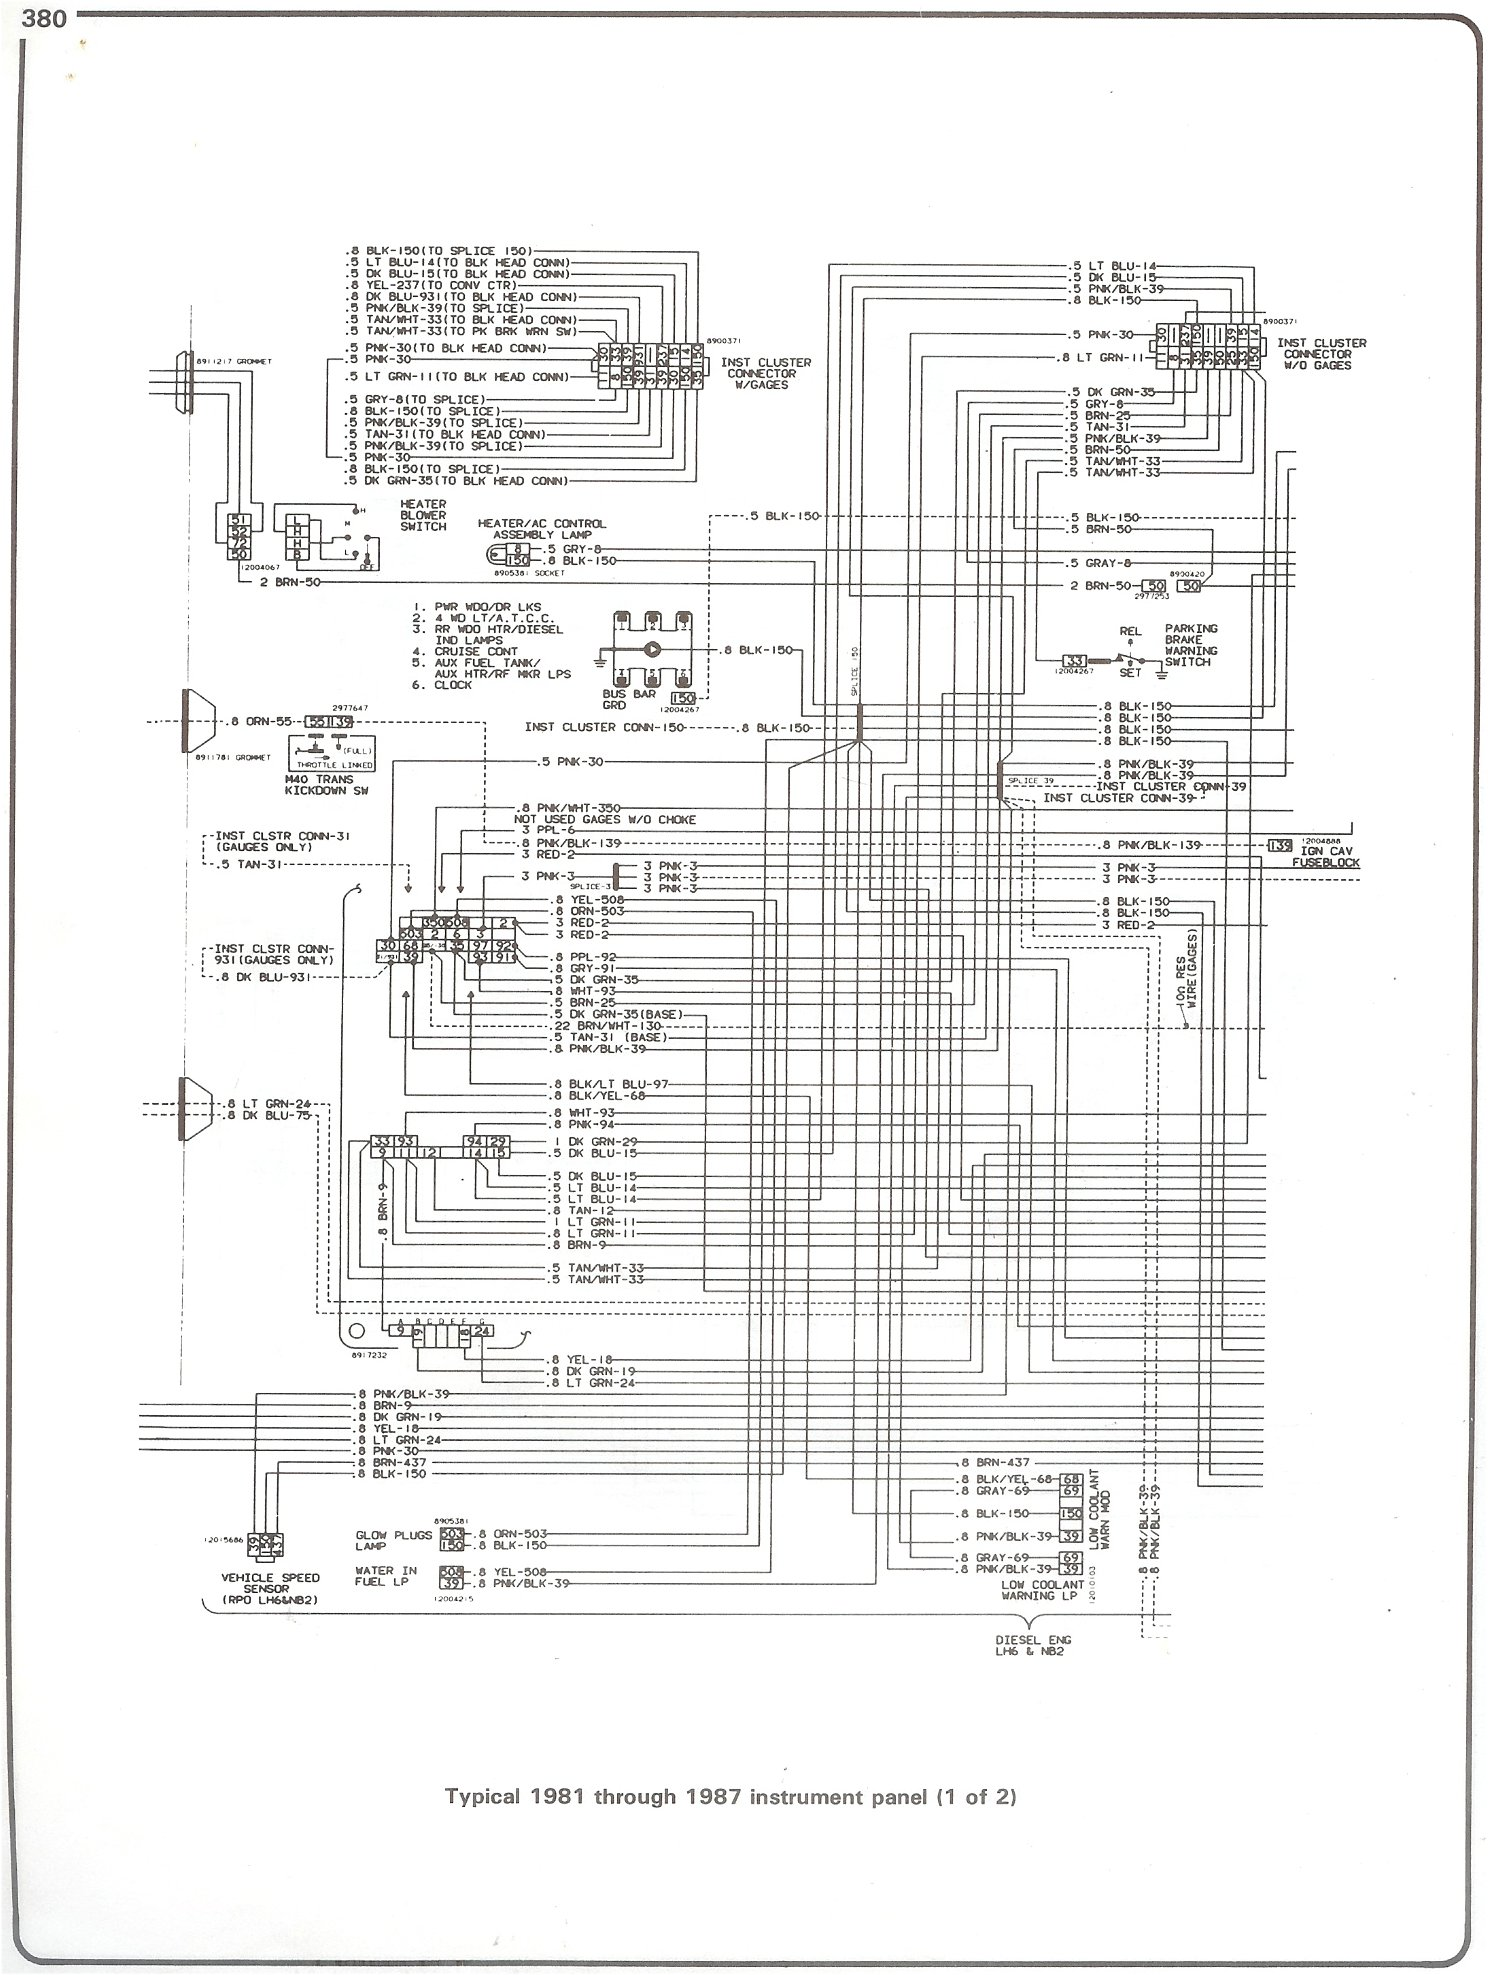 electrical wiring diagram 1979 gmc c60 trusted wiring diagrams rh kroud co 1975 chevy nova wiring diagram 1975 chevy wiring diagram charging system